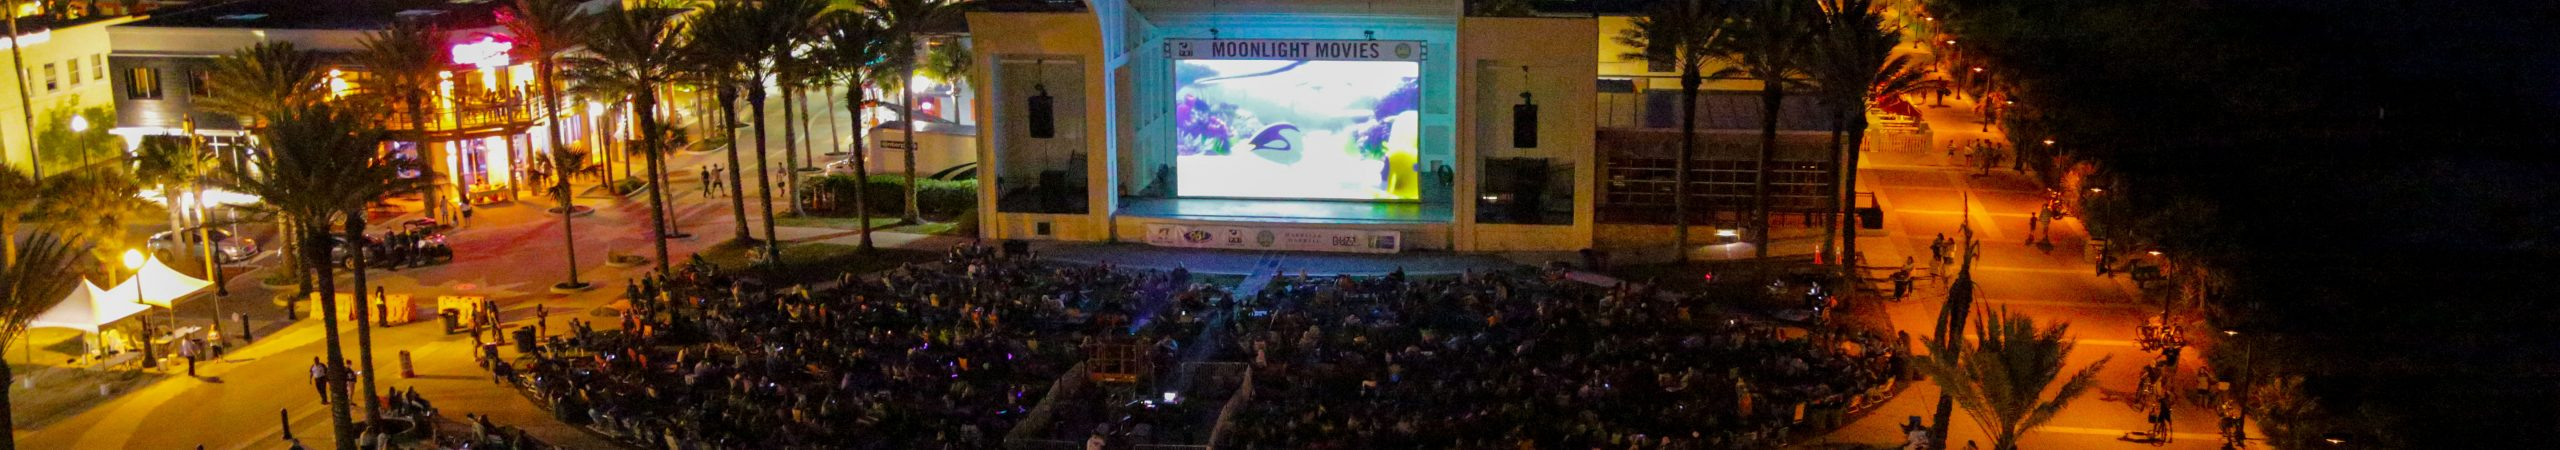 Step Outside for Moonlight Movies at Jacksonville Beach